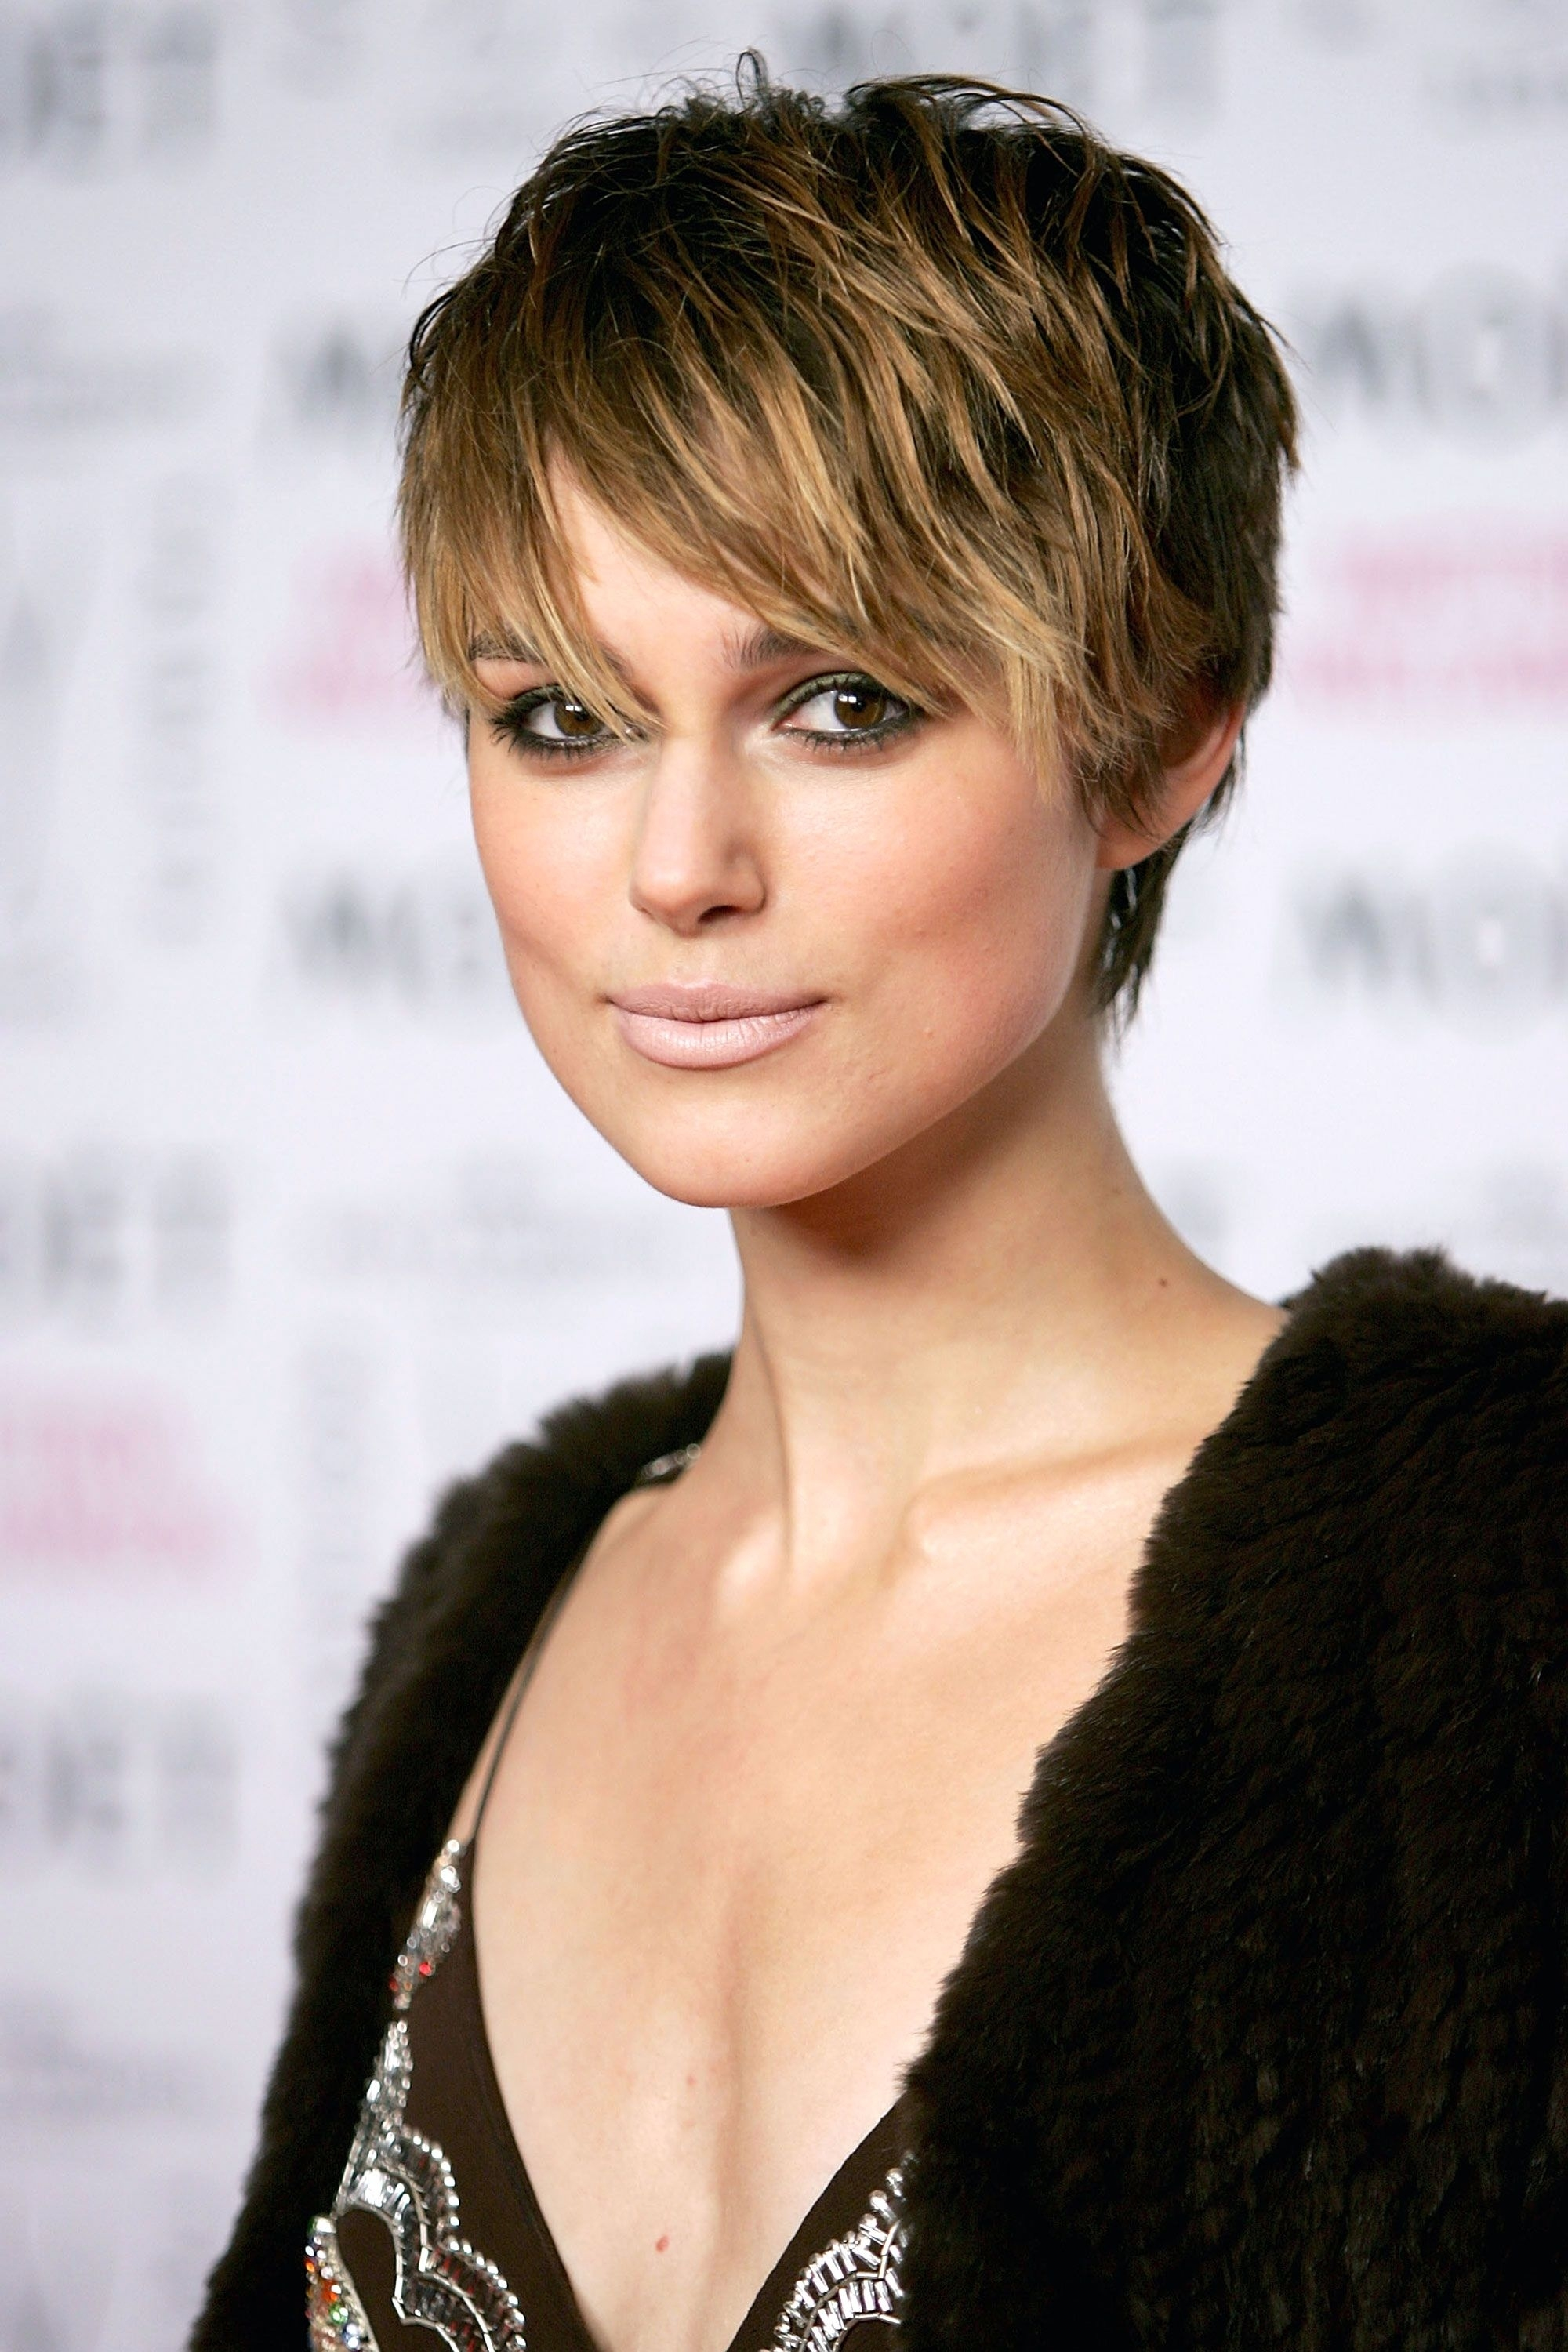 Long Pixie Haircut For Square Face Wavy Haircut